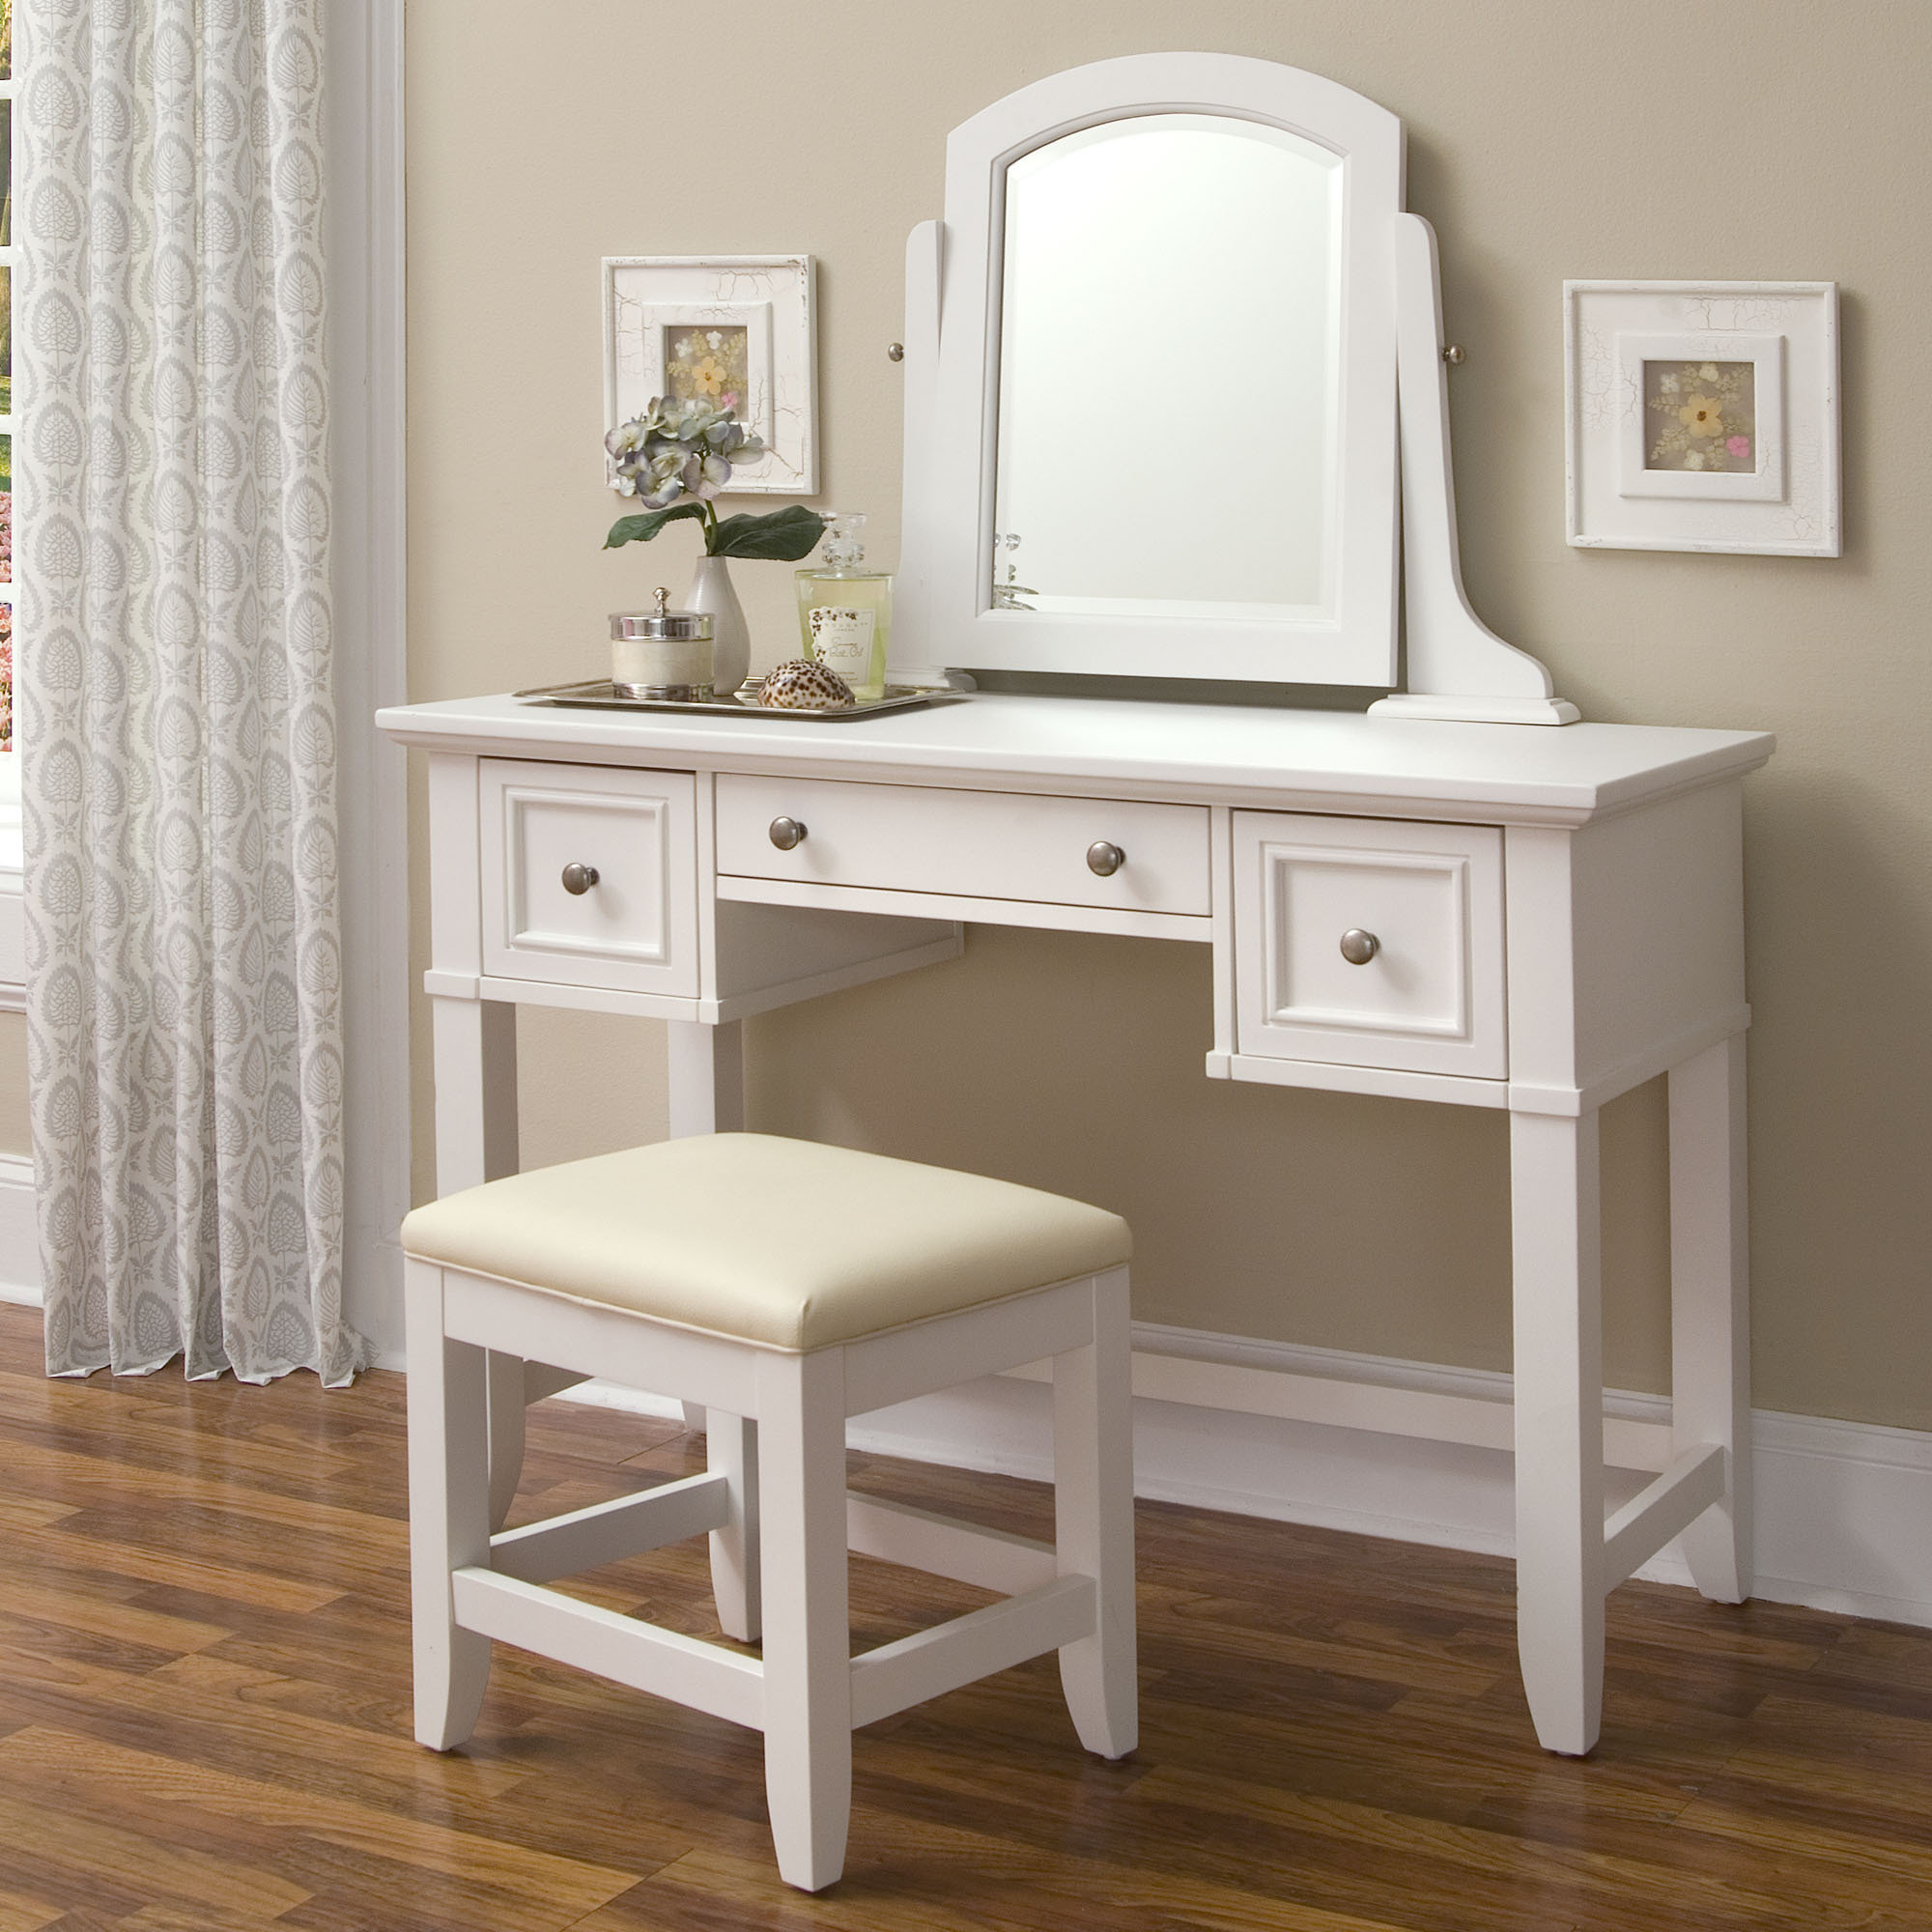 Makeup Vanities with Lights | Makeup Vanity Table with Lighted Mirror | Vanity for Makeup